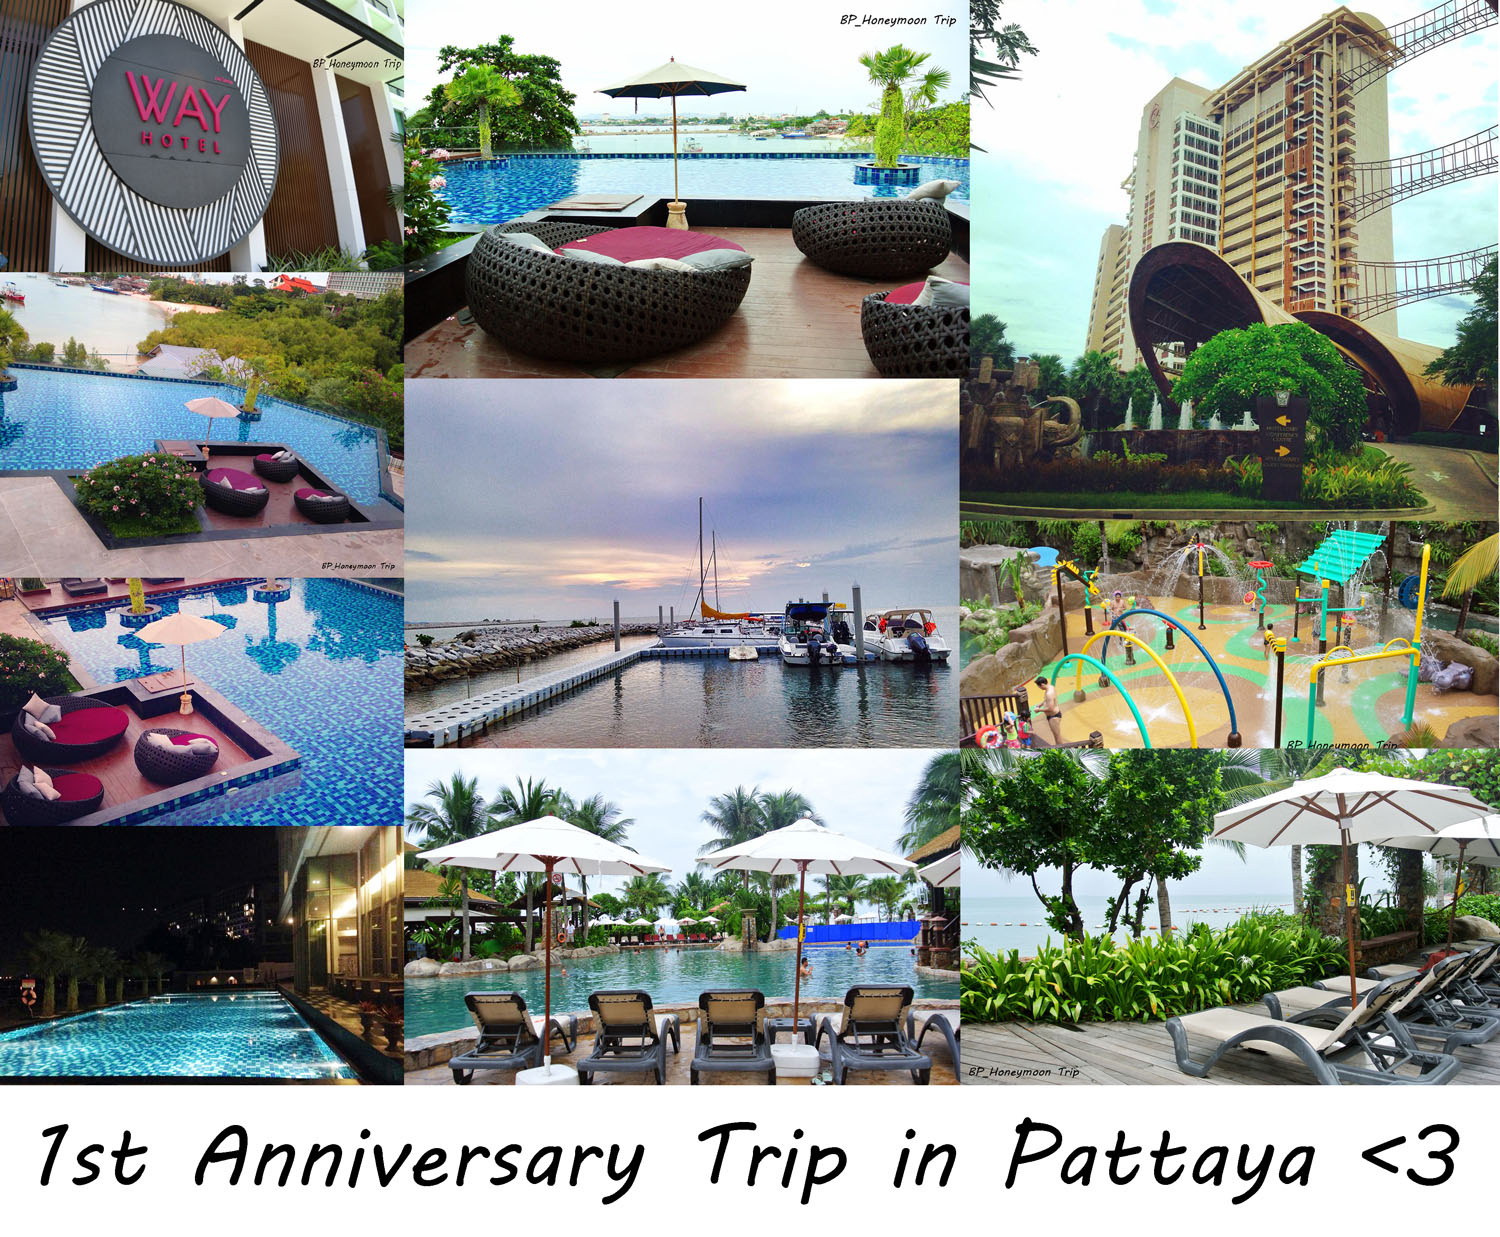 Cru003e 1st anniversary trip @ way hotel & centara grand mirage beach